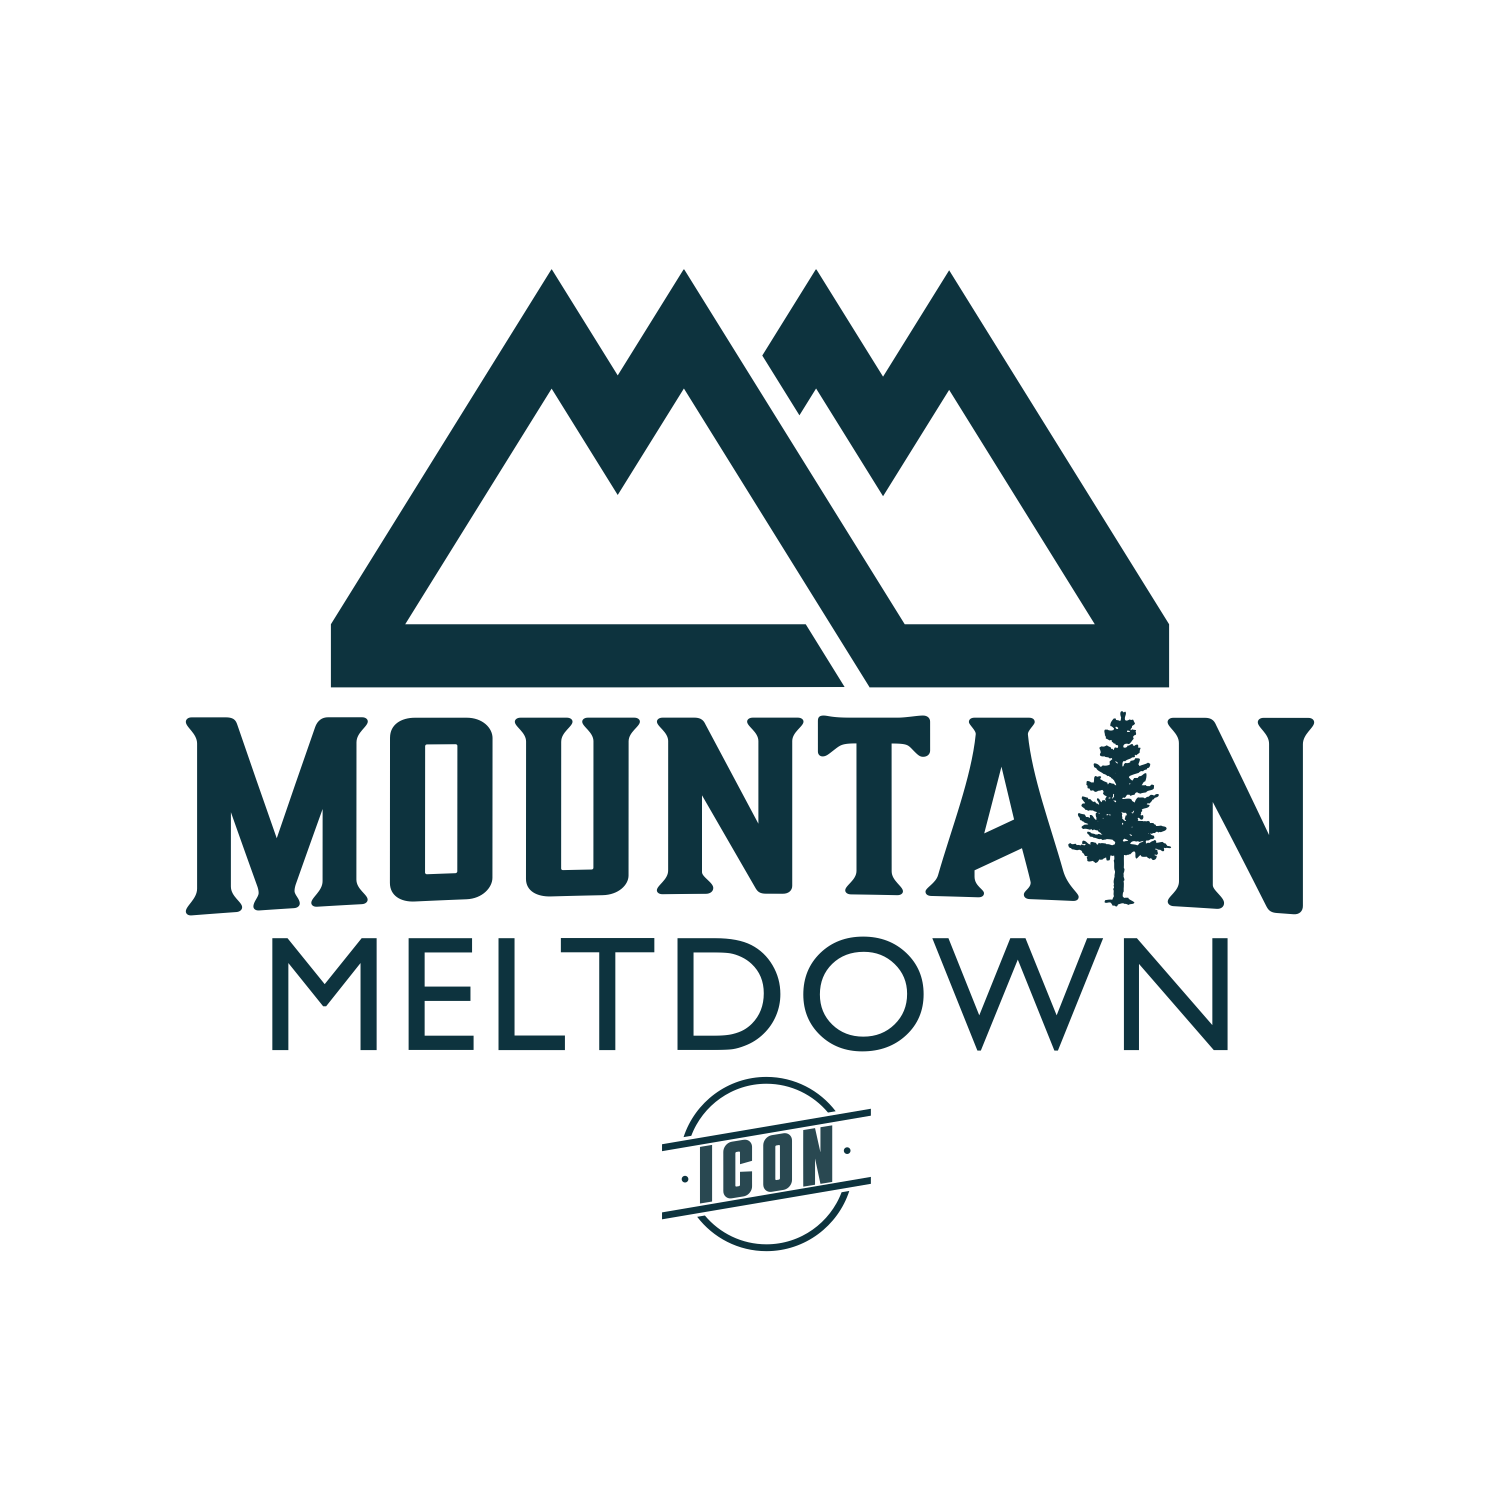 The Mountain Meltdown